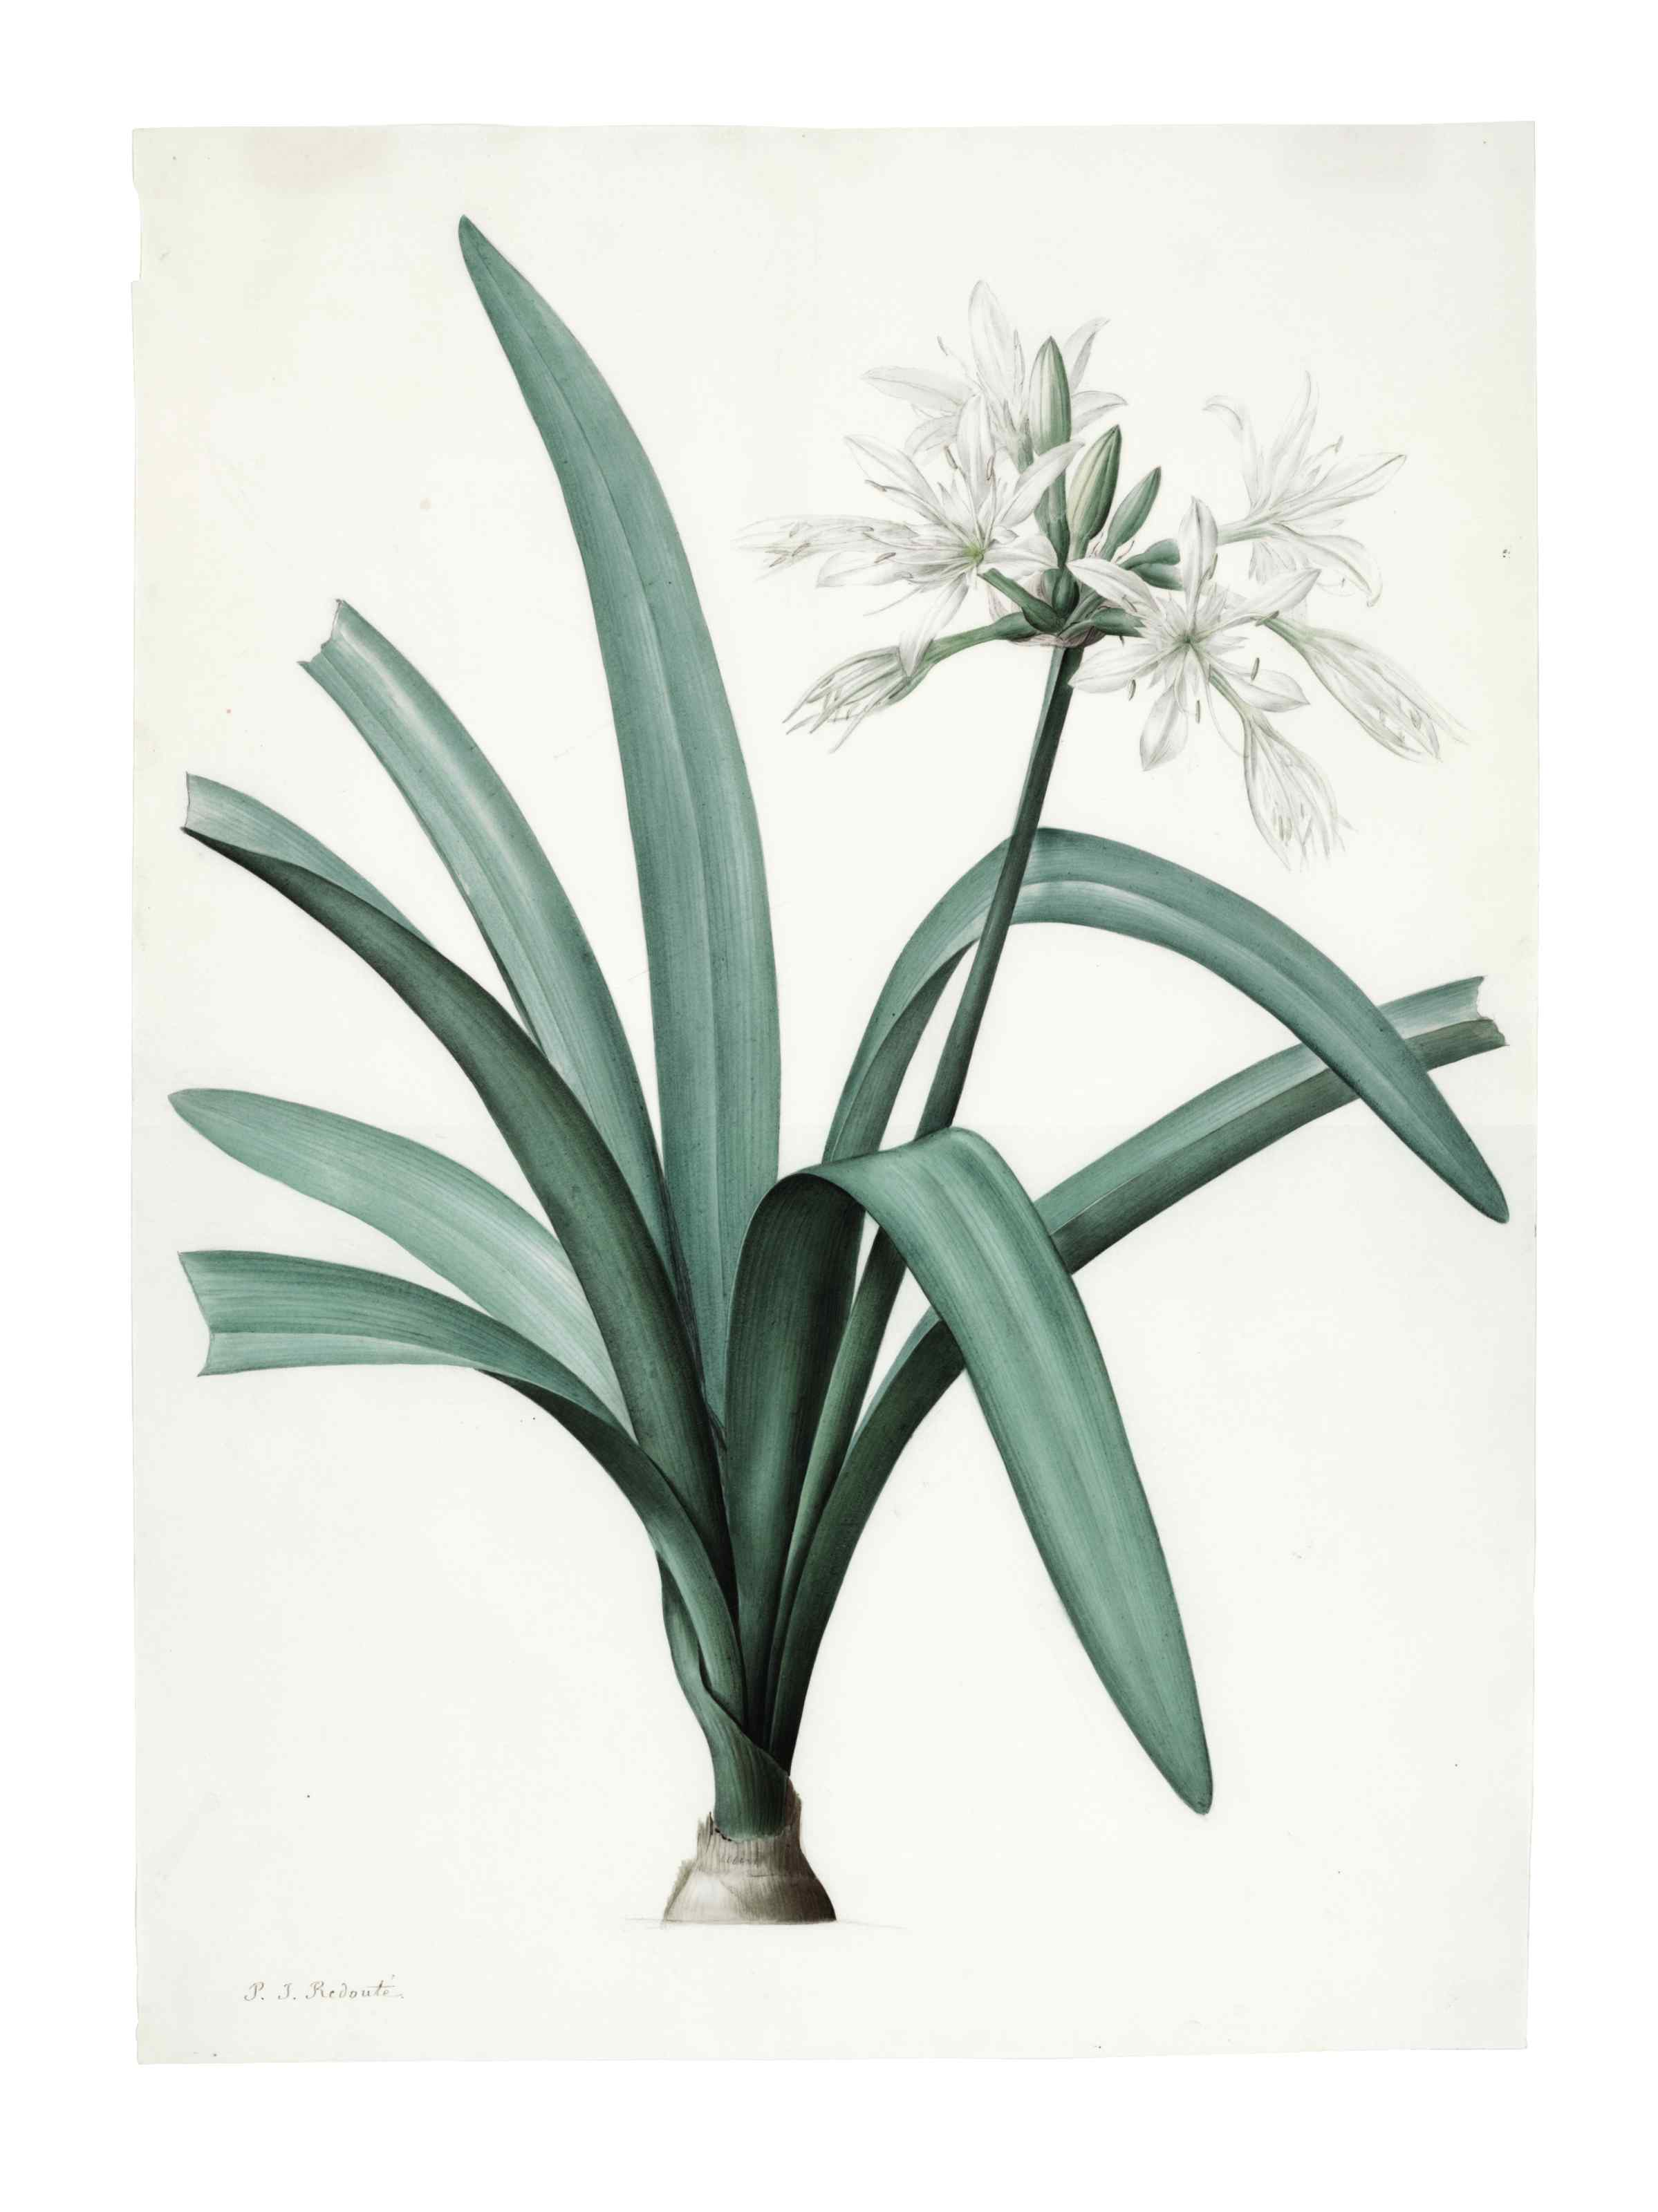 Pancratium Illyricum, Pancratium Littorale, Albuca Major and Agave Yuccafolio; four botanicals